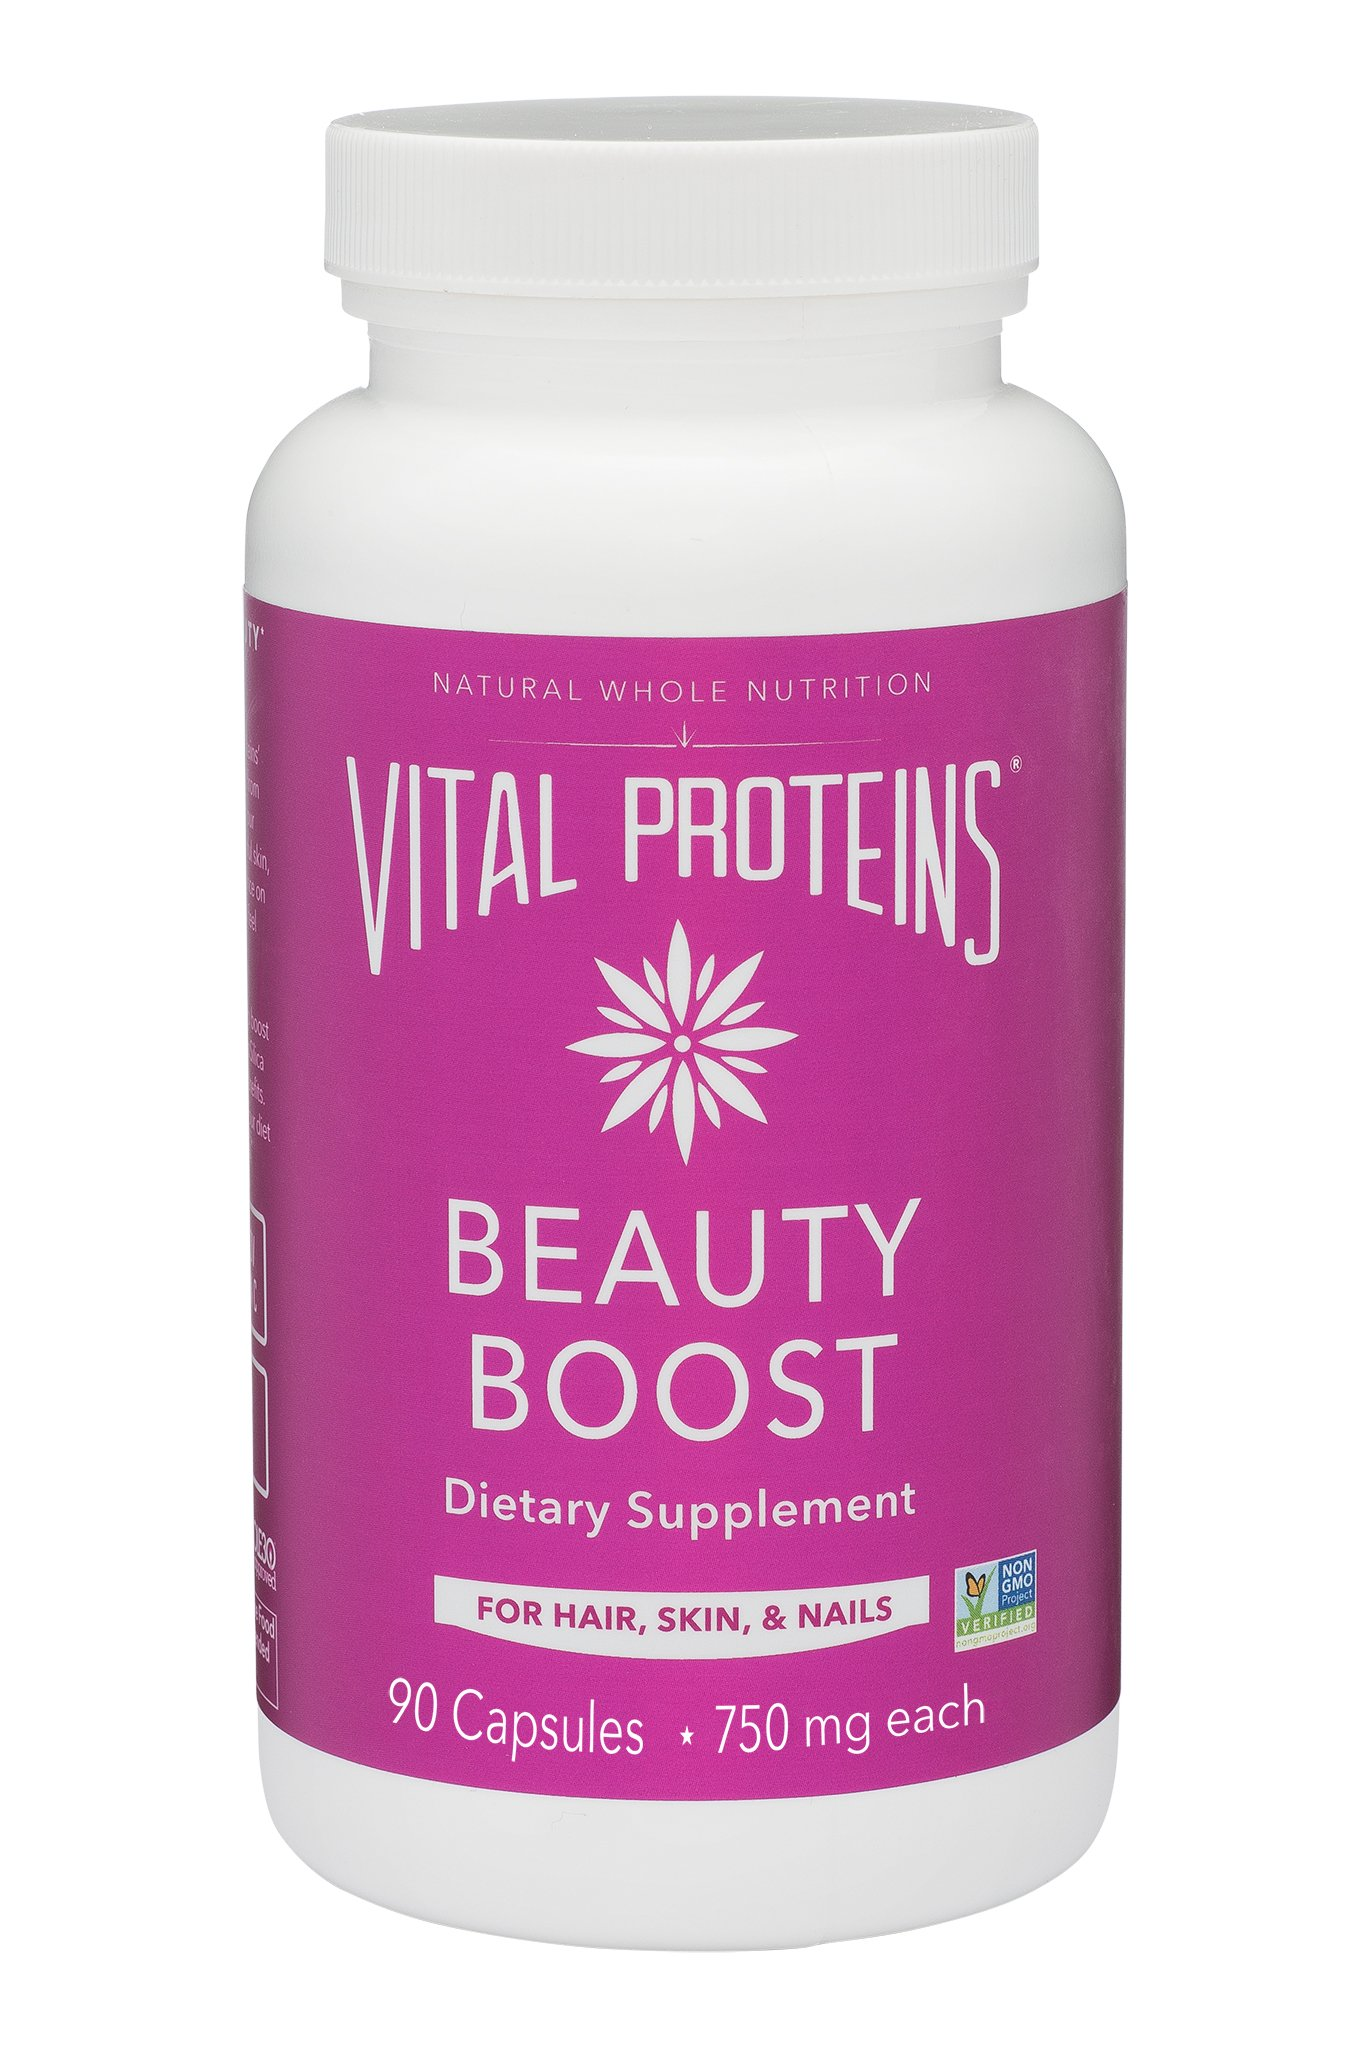 Vital Proteins Biotin Capsule Supplement - 1500mcg of Biotin per Serving (500% DV), Hair Skin Nail Support*, Boost Collagen Synthesis, Gluten-Free by Vital Proteins